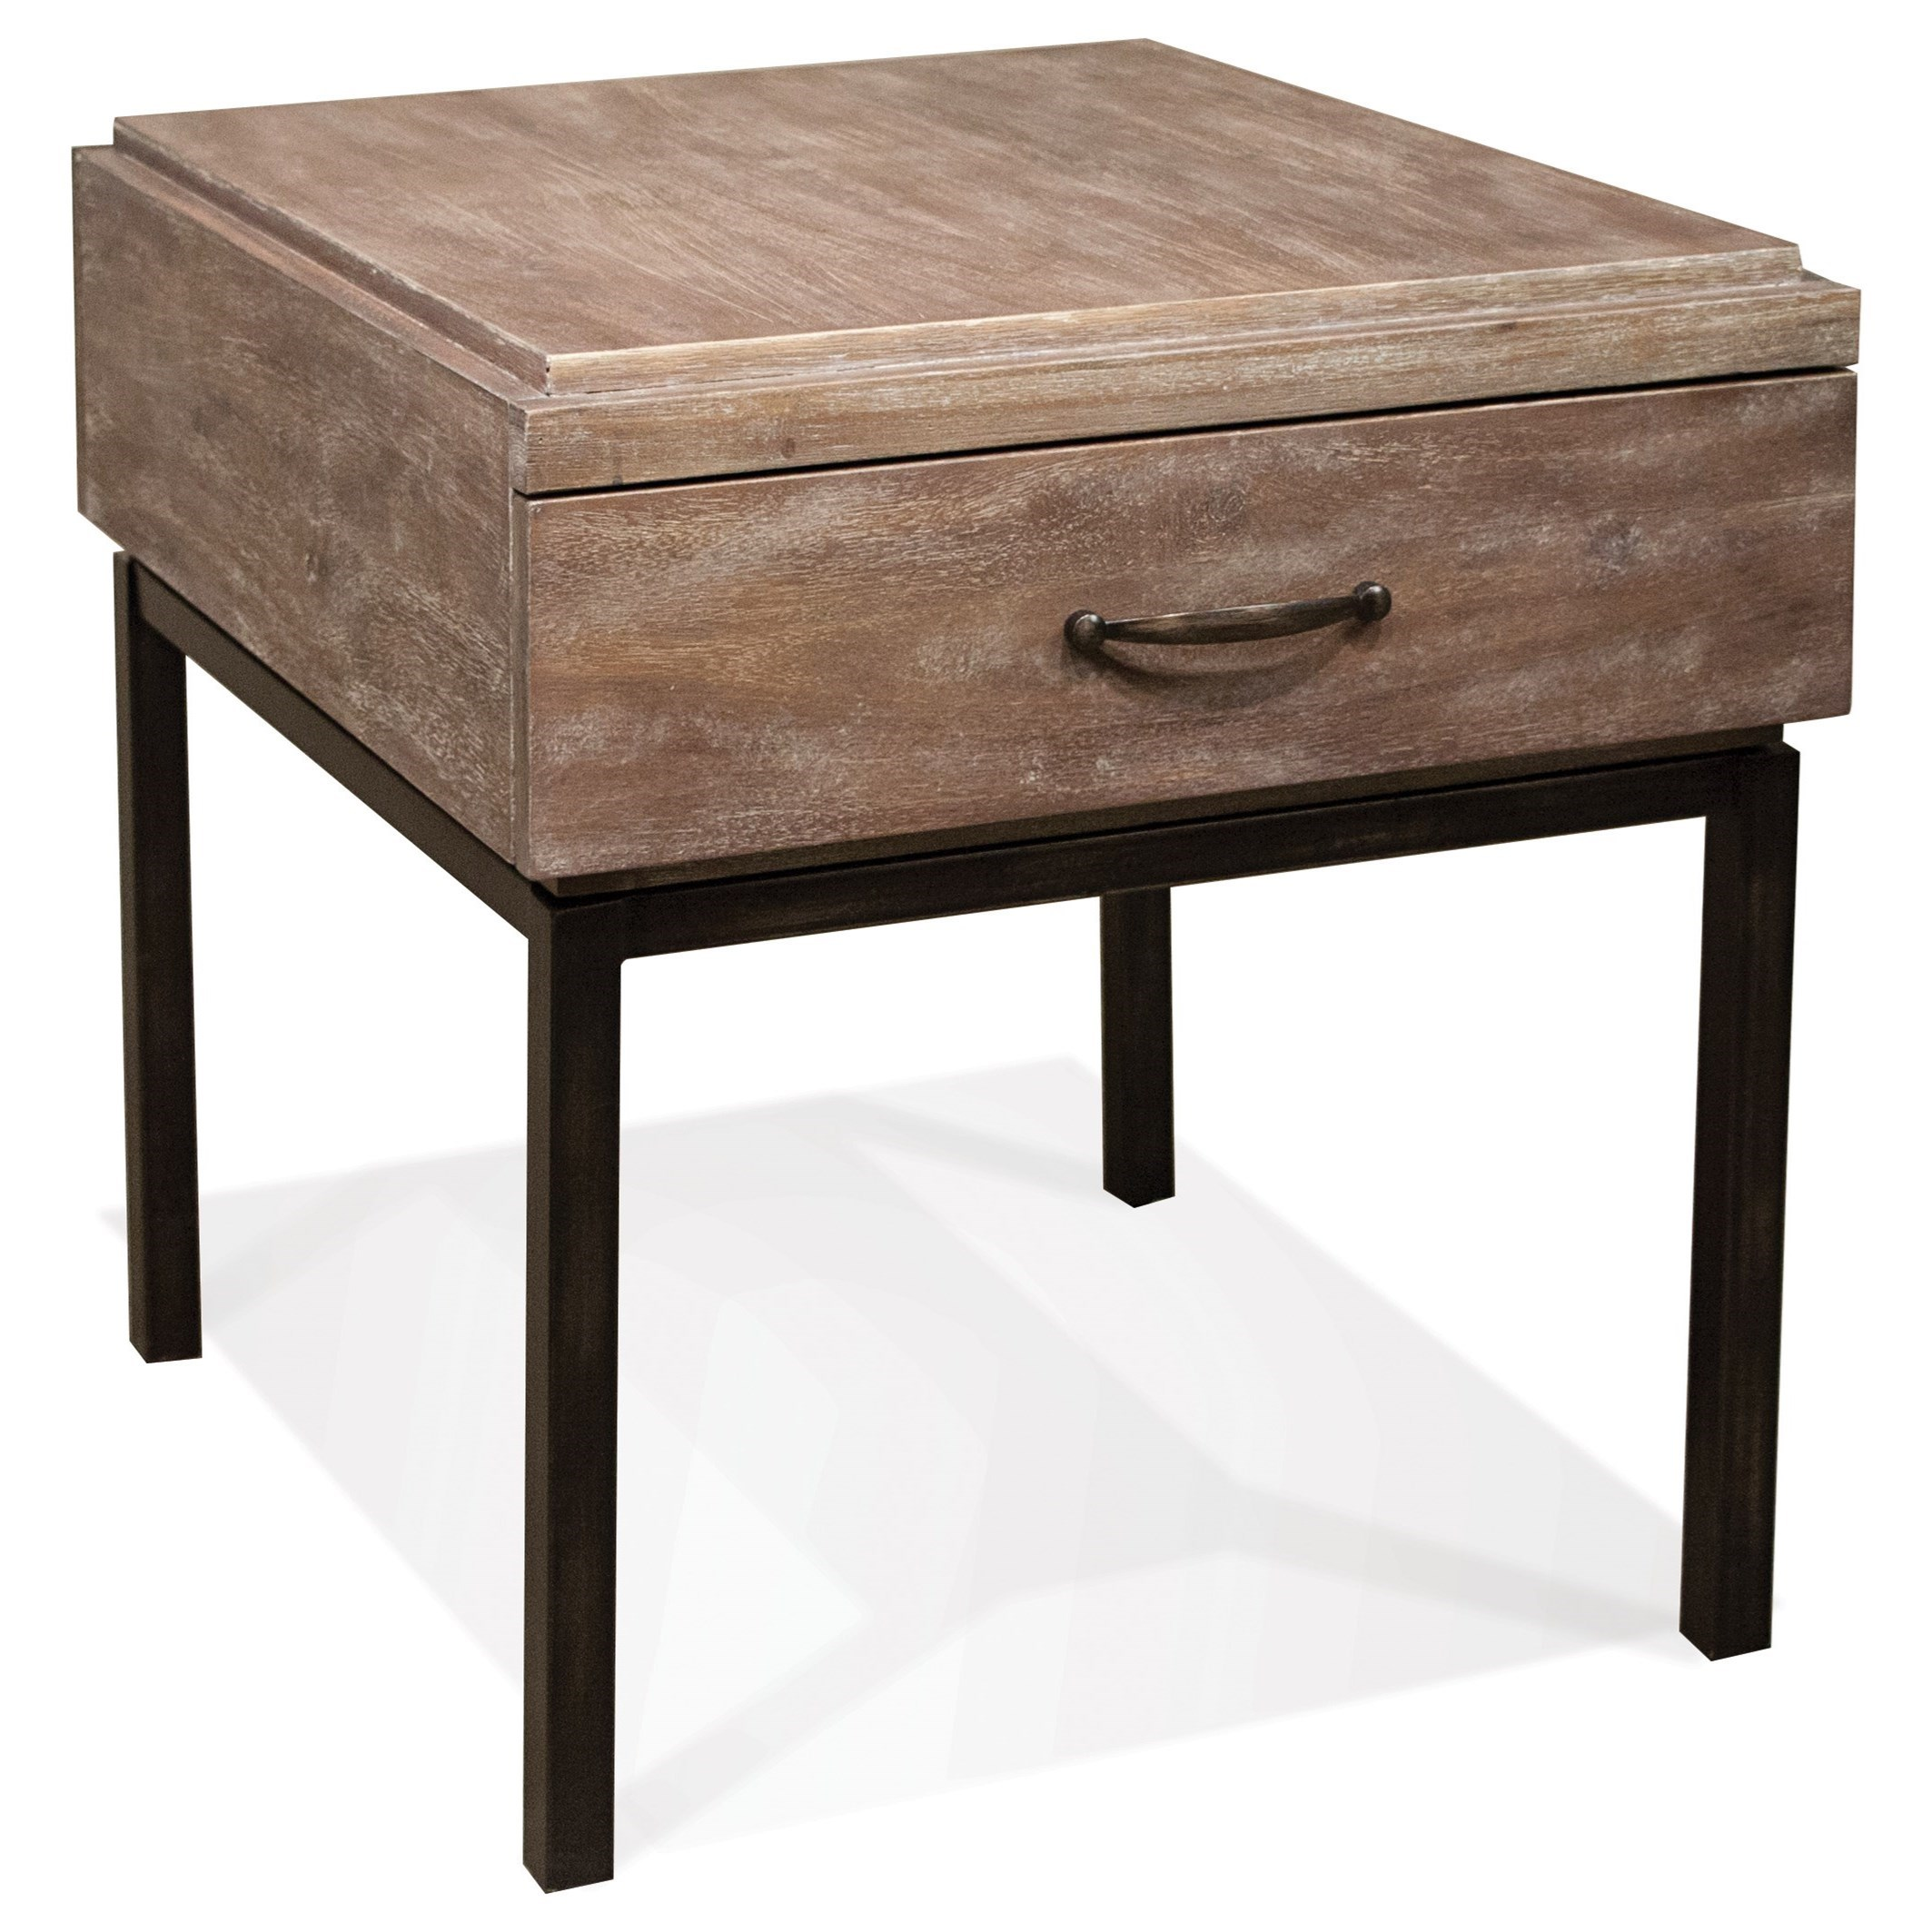 Riverside furniture axis 1 drawer side table with metal for Side table base